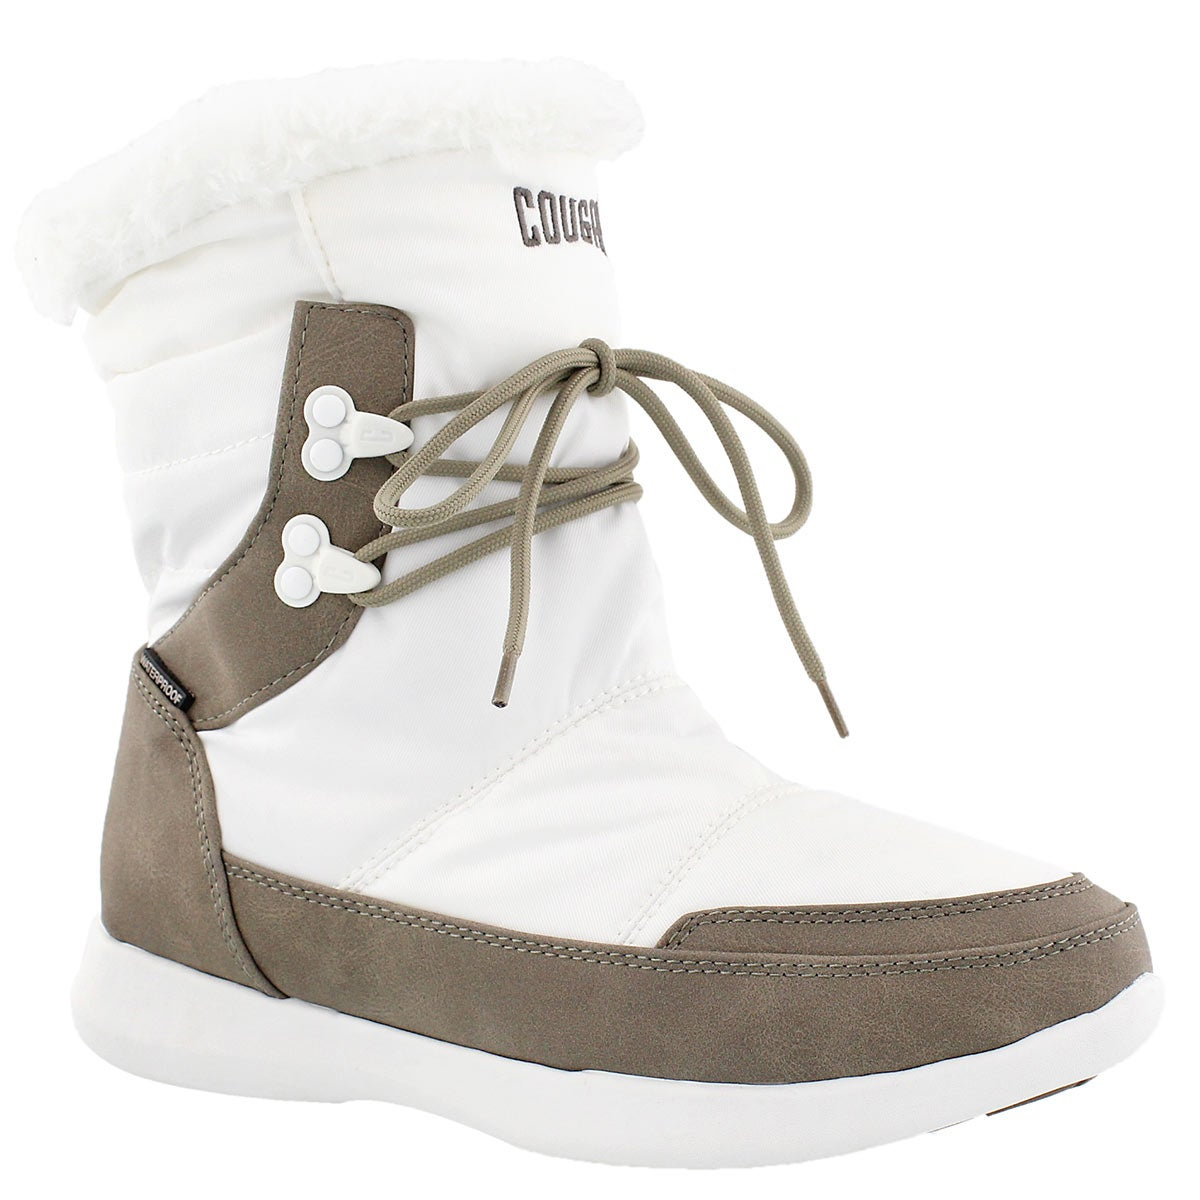 Lds Wonder wht wtpf pull on winter boot